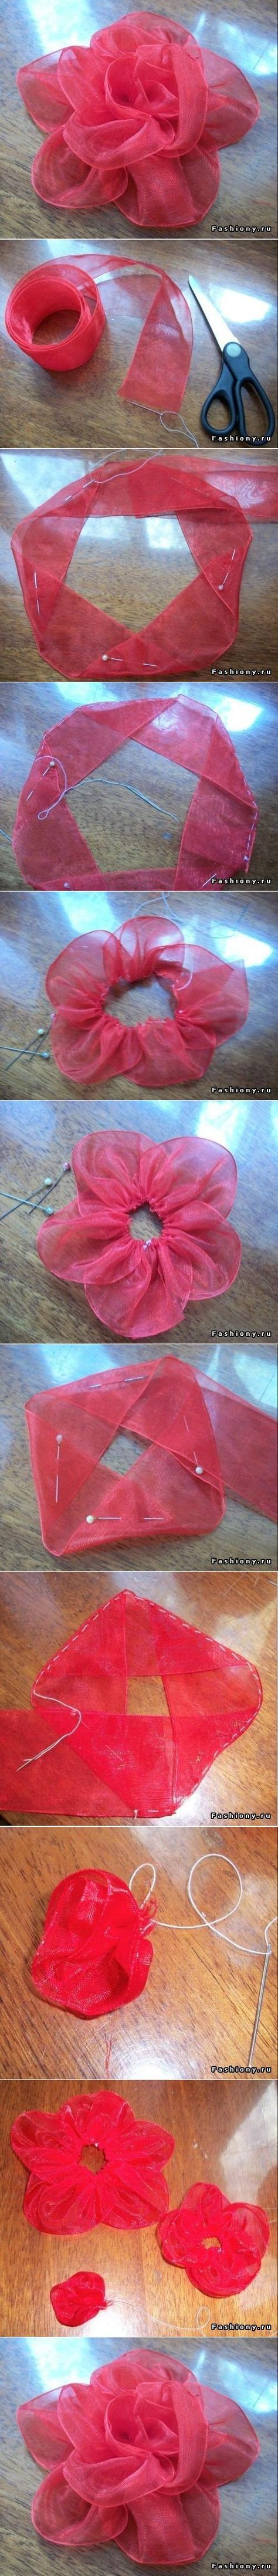 Ribbon Rose Illustrated Tutorial: fold angles, pin, stitch perimeters, layer | I would heat seal the raw edges of the organdy ribbon to prevent fraying & sew a bling  onto the flower center